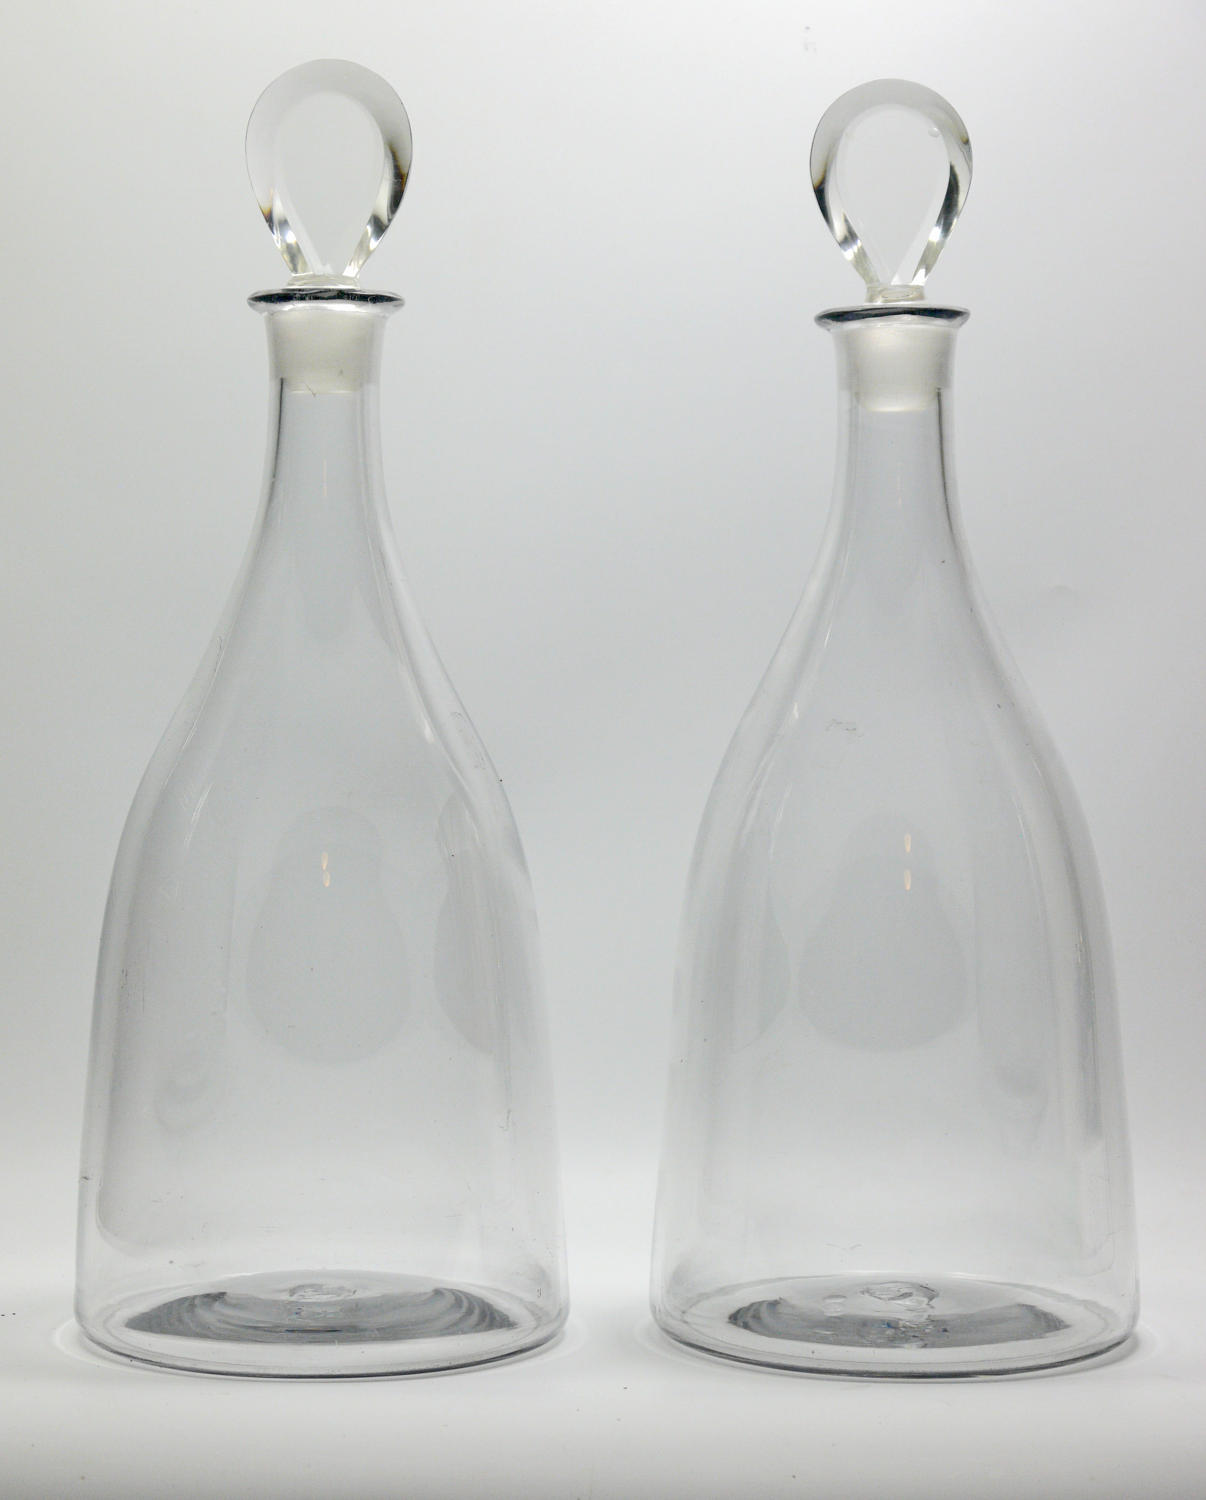 An exceptional pair of Georgian three-bottle decanters